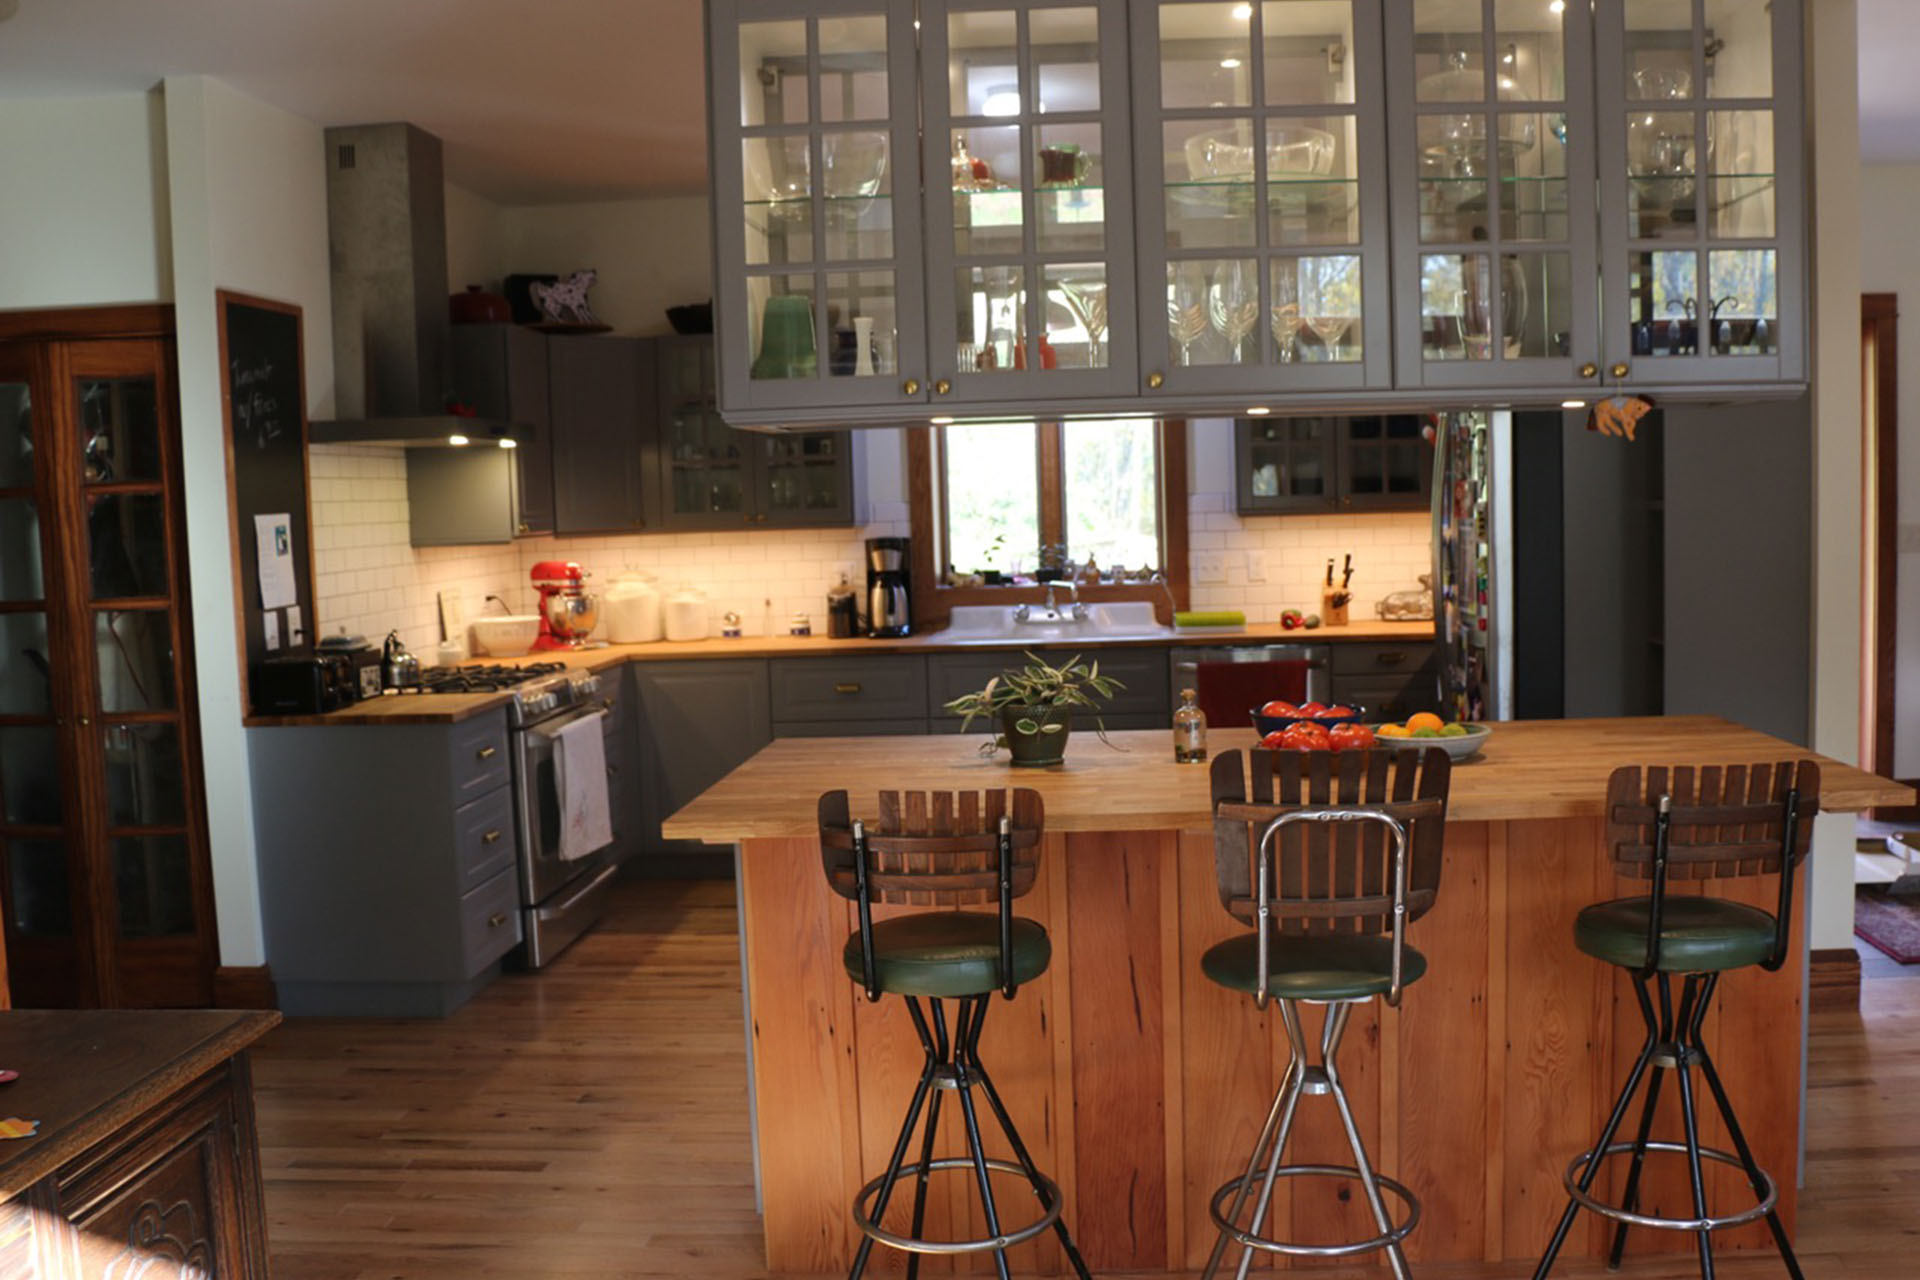 Ikea Kitchen Design Blog An Ikea Kitchen Helps Keep This Minnesota Home Warm In The